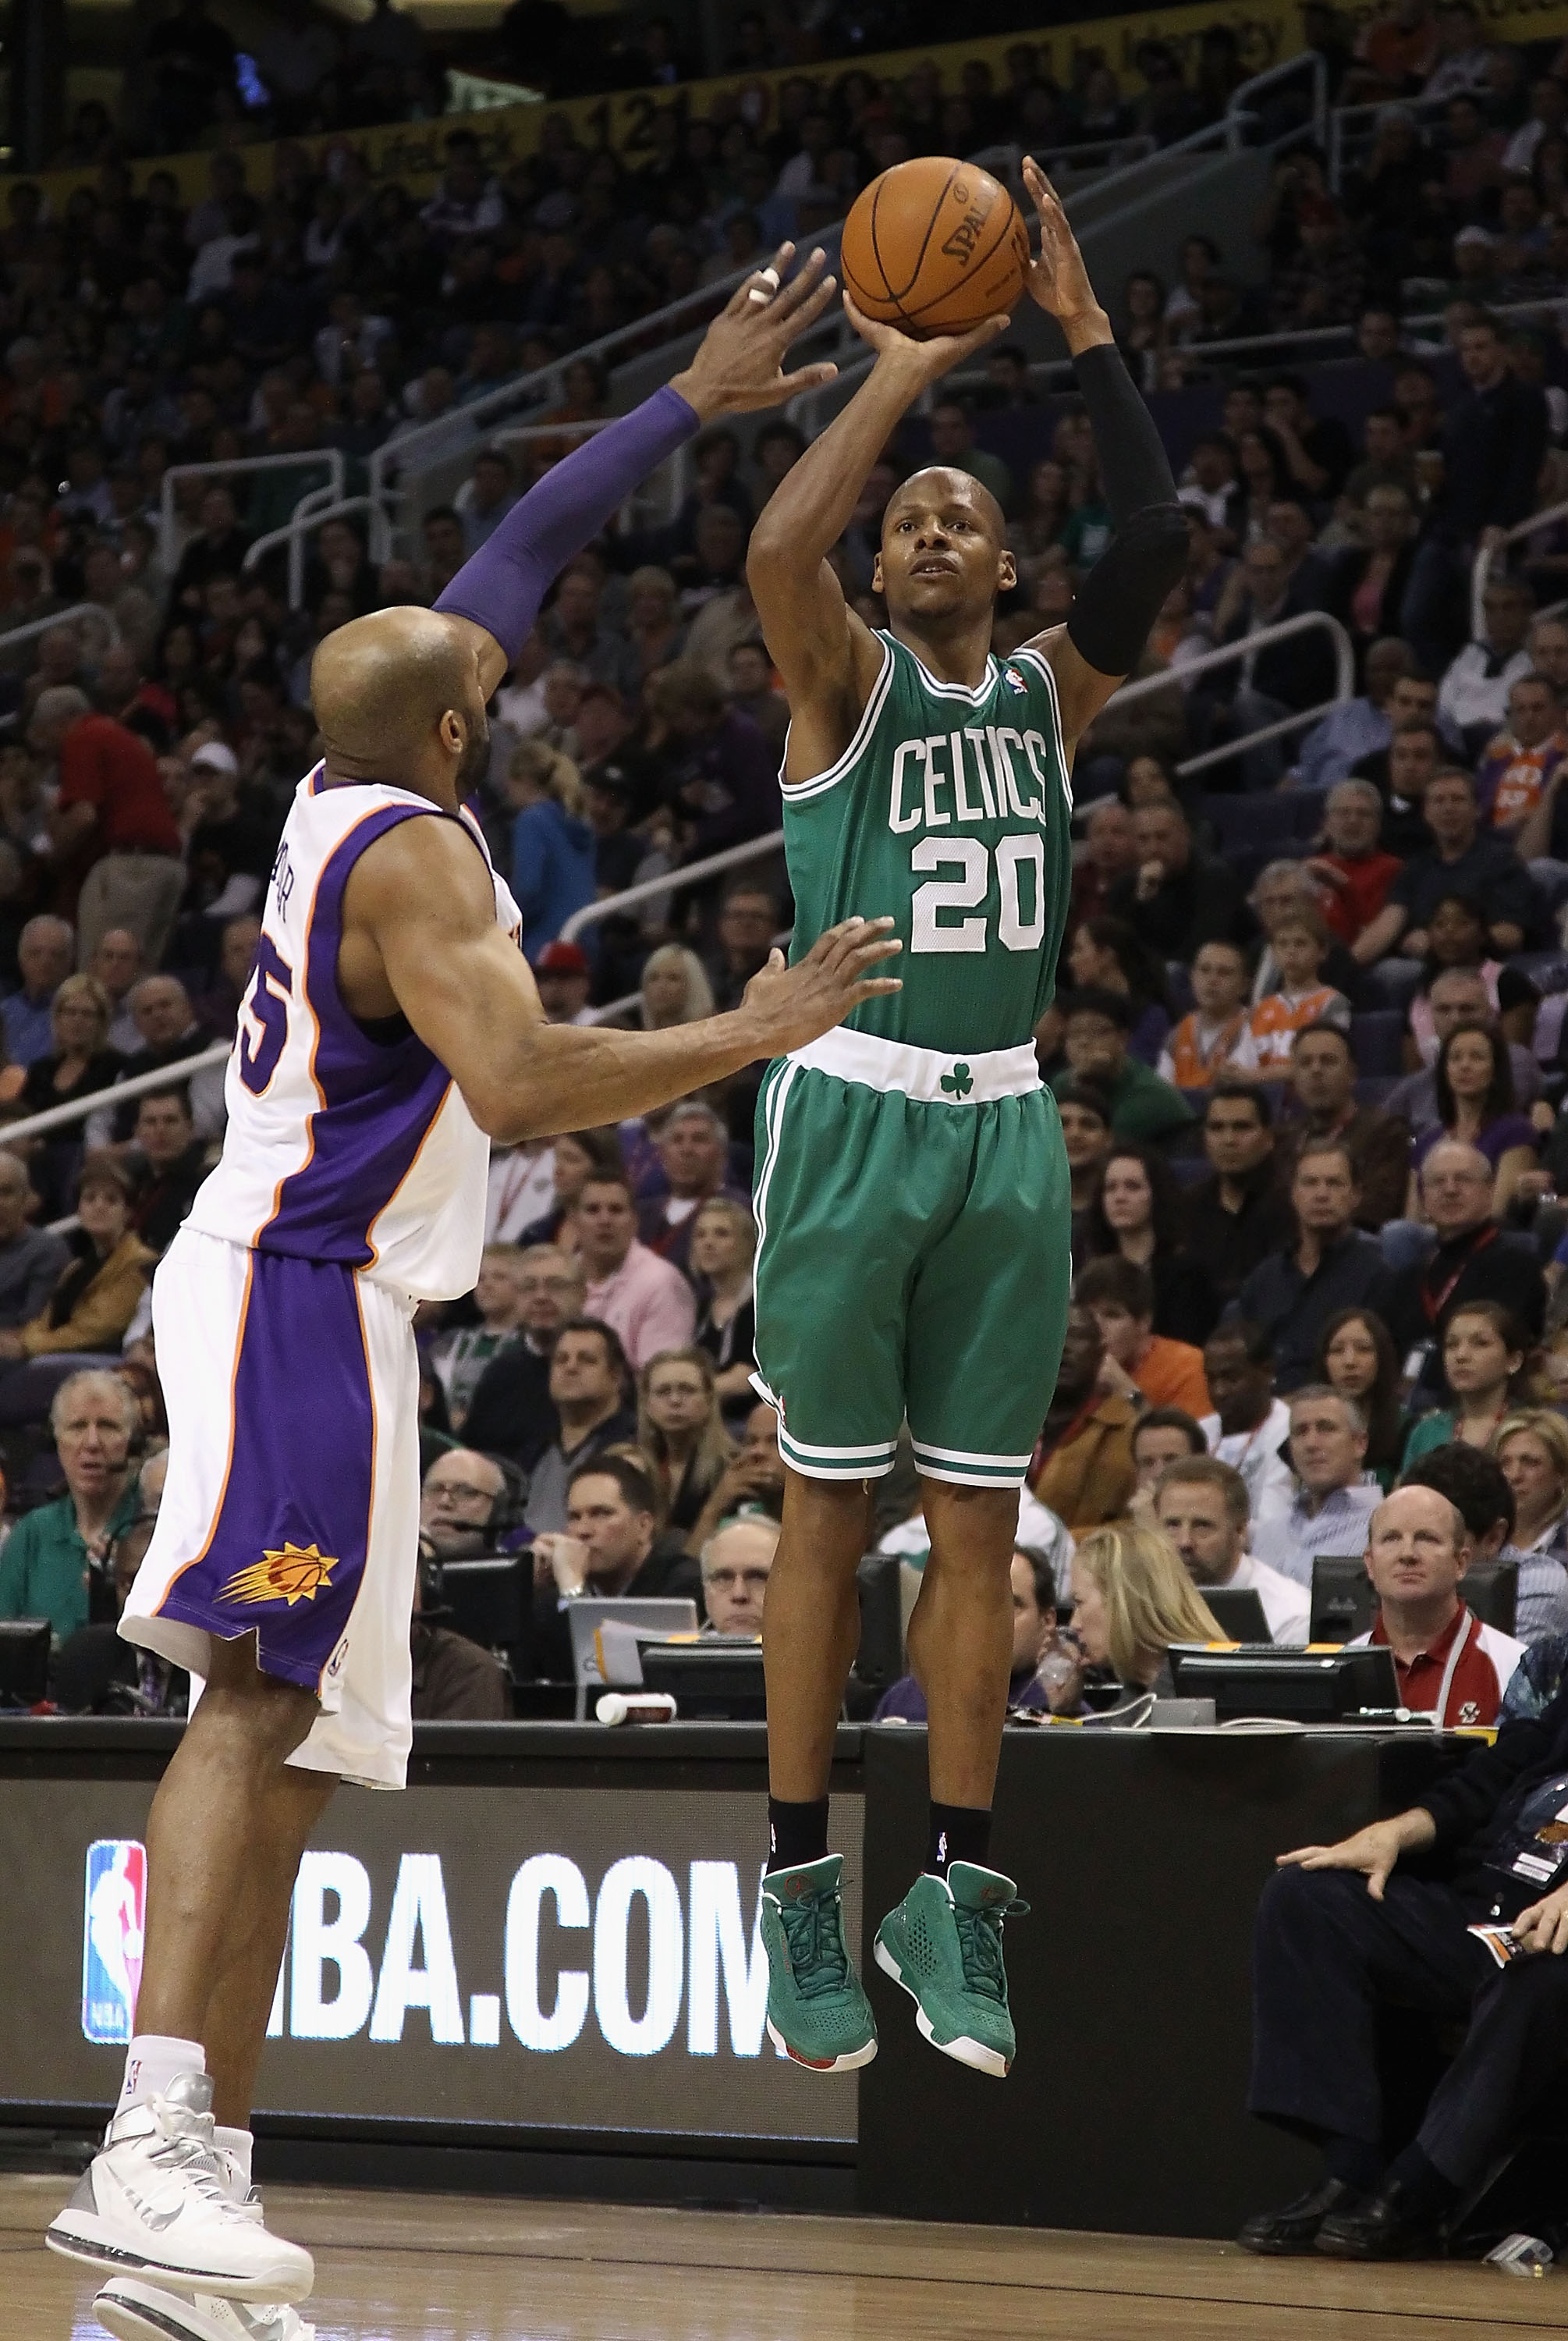 PHOENIX, AZ - JANUARY 28:  Ray Allen #20 of the Boston Celtics attempts a three point shot over Vince Carter #25 of the Phoenix Suns during the NBA game at US Airways Center on January 28, 2011 in Phoenix, Arizona. The Suns defeated the Celtics 88-71.  NO